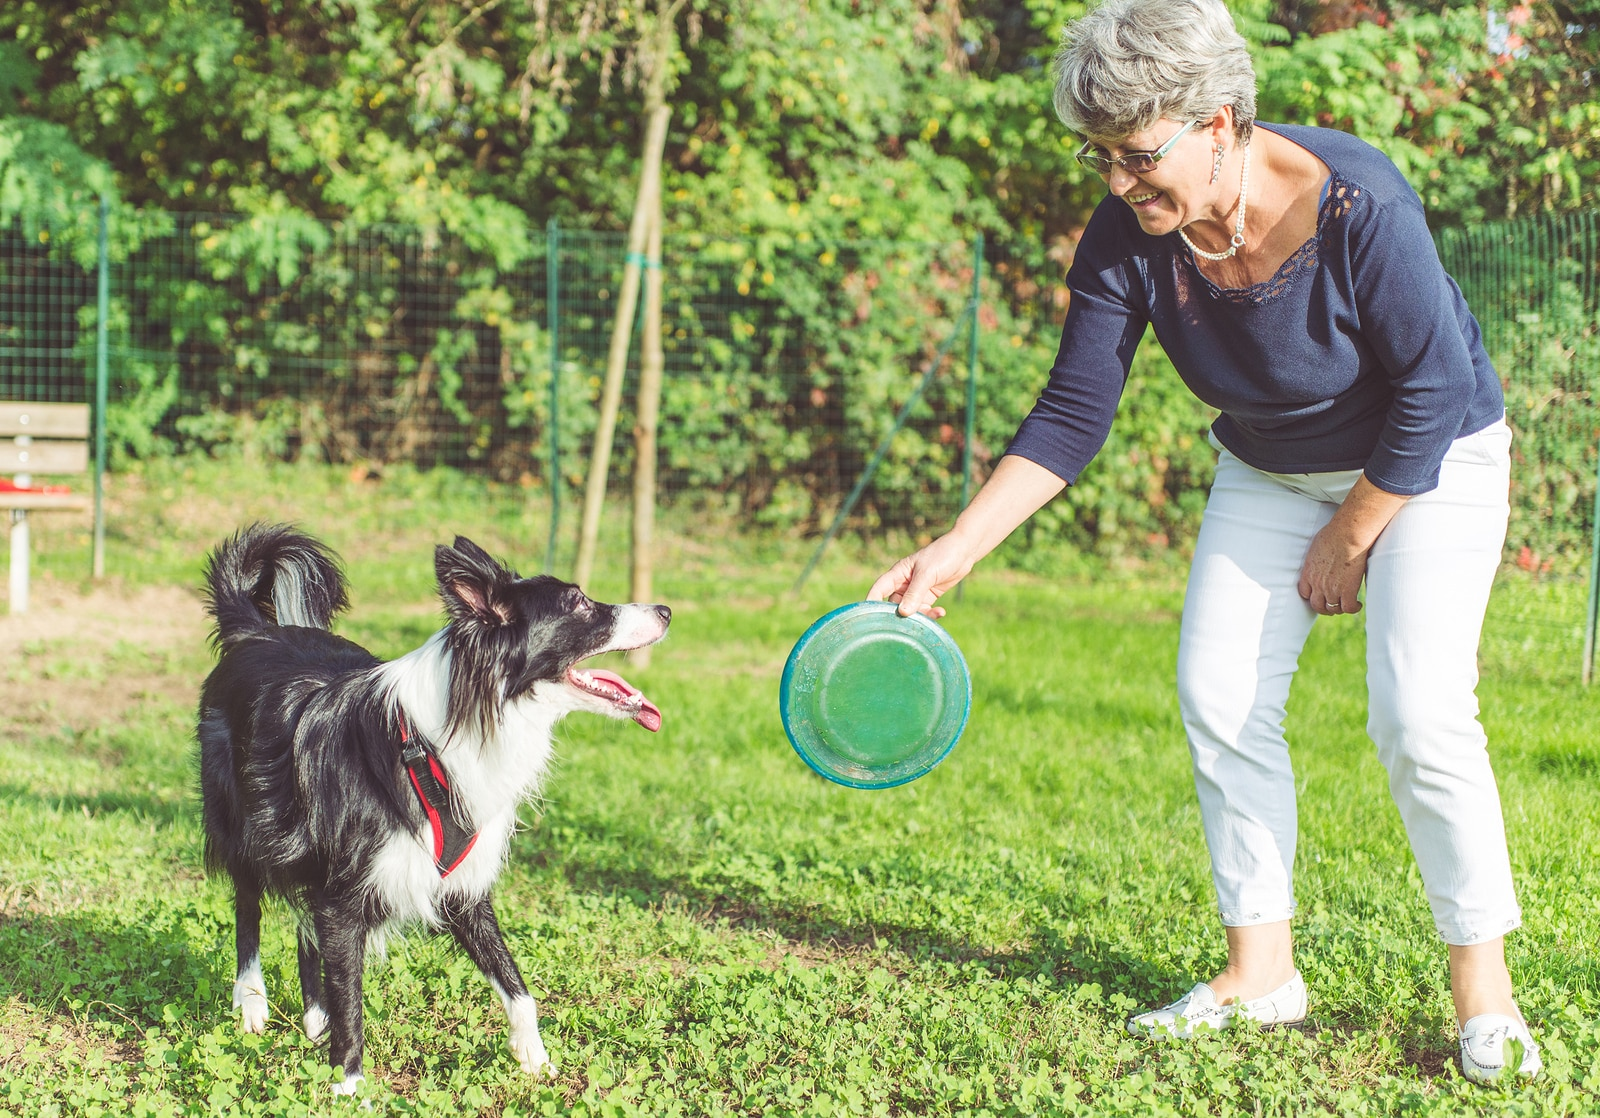 Elder woman holding frisbee for black and white shepherd dog to play with.